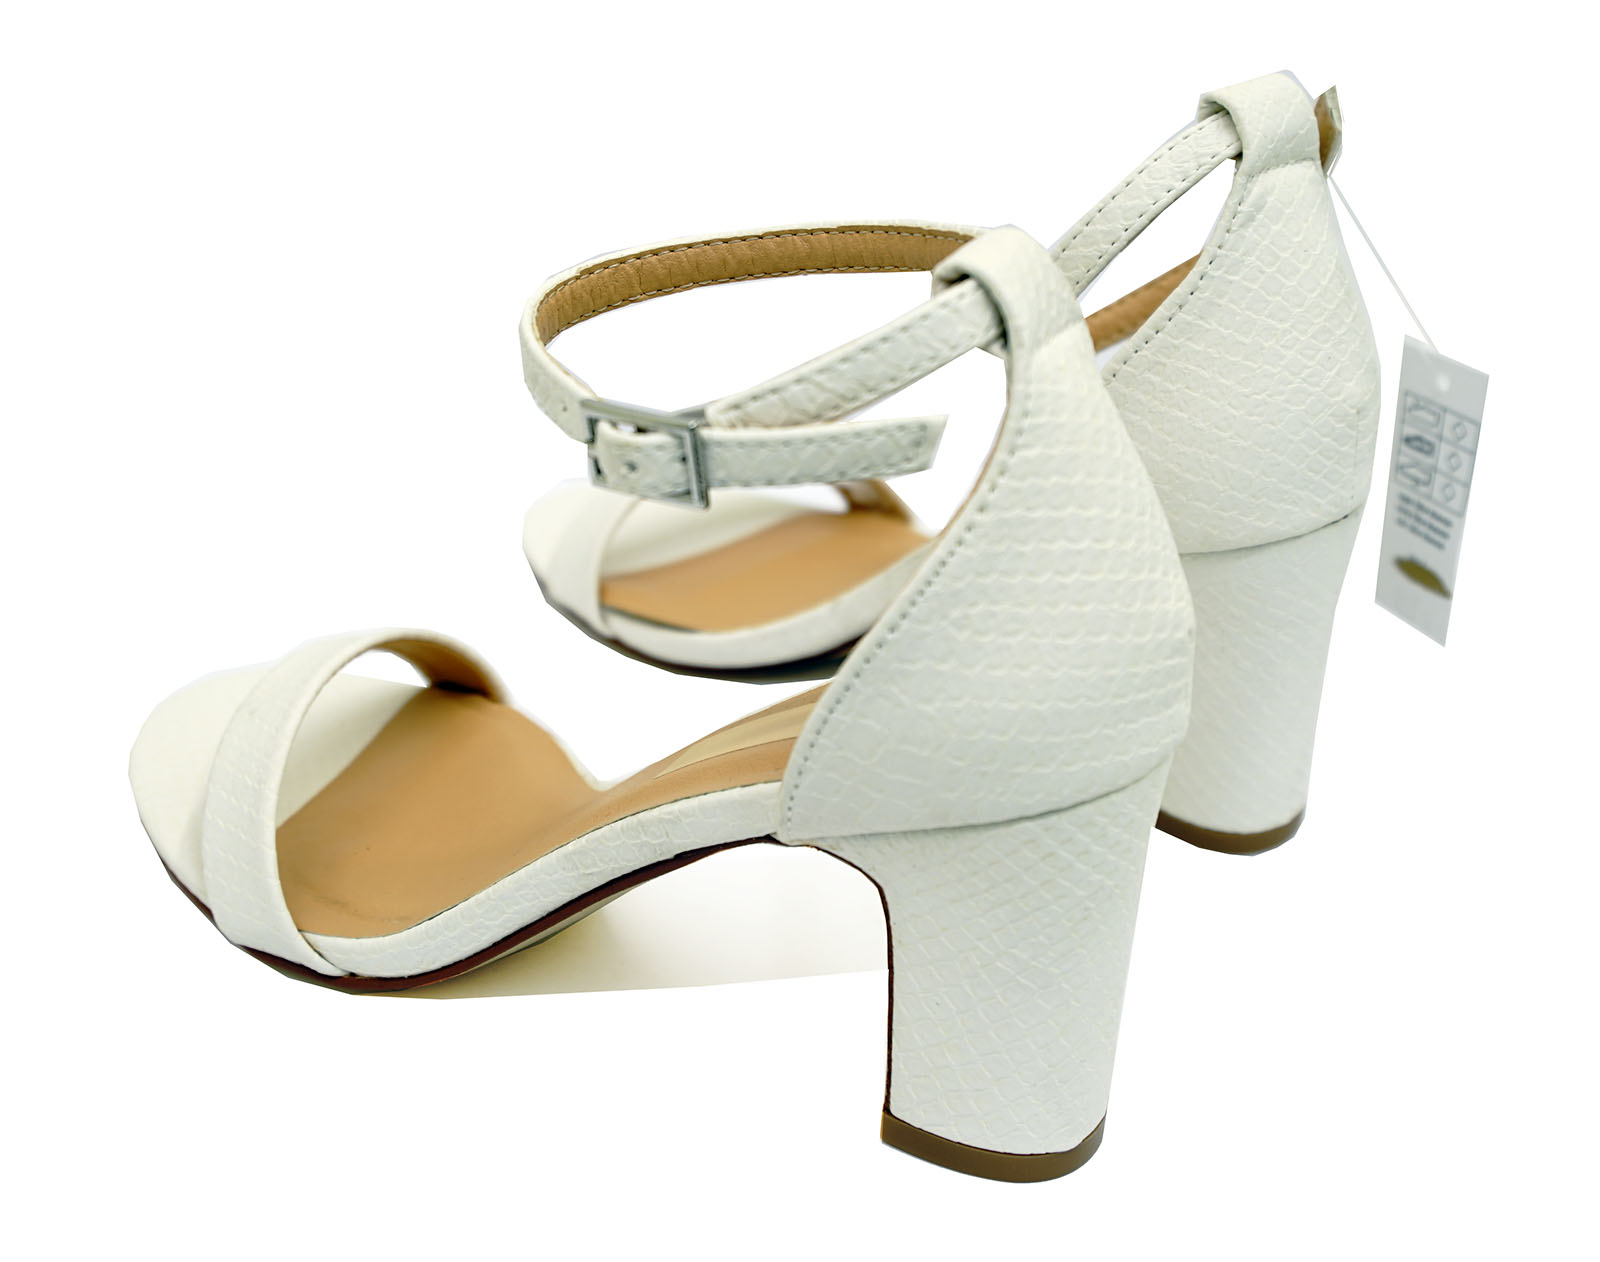 LADIES-WHITE-ANKLE-STRAP-BLOCK-HEEL-PEEPTOE-SANDALS-HOLIDAY-COMFY-SHOES-UK-3-8 thumbnail 12